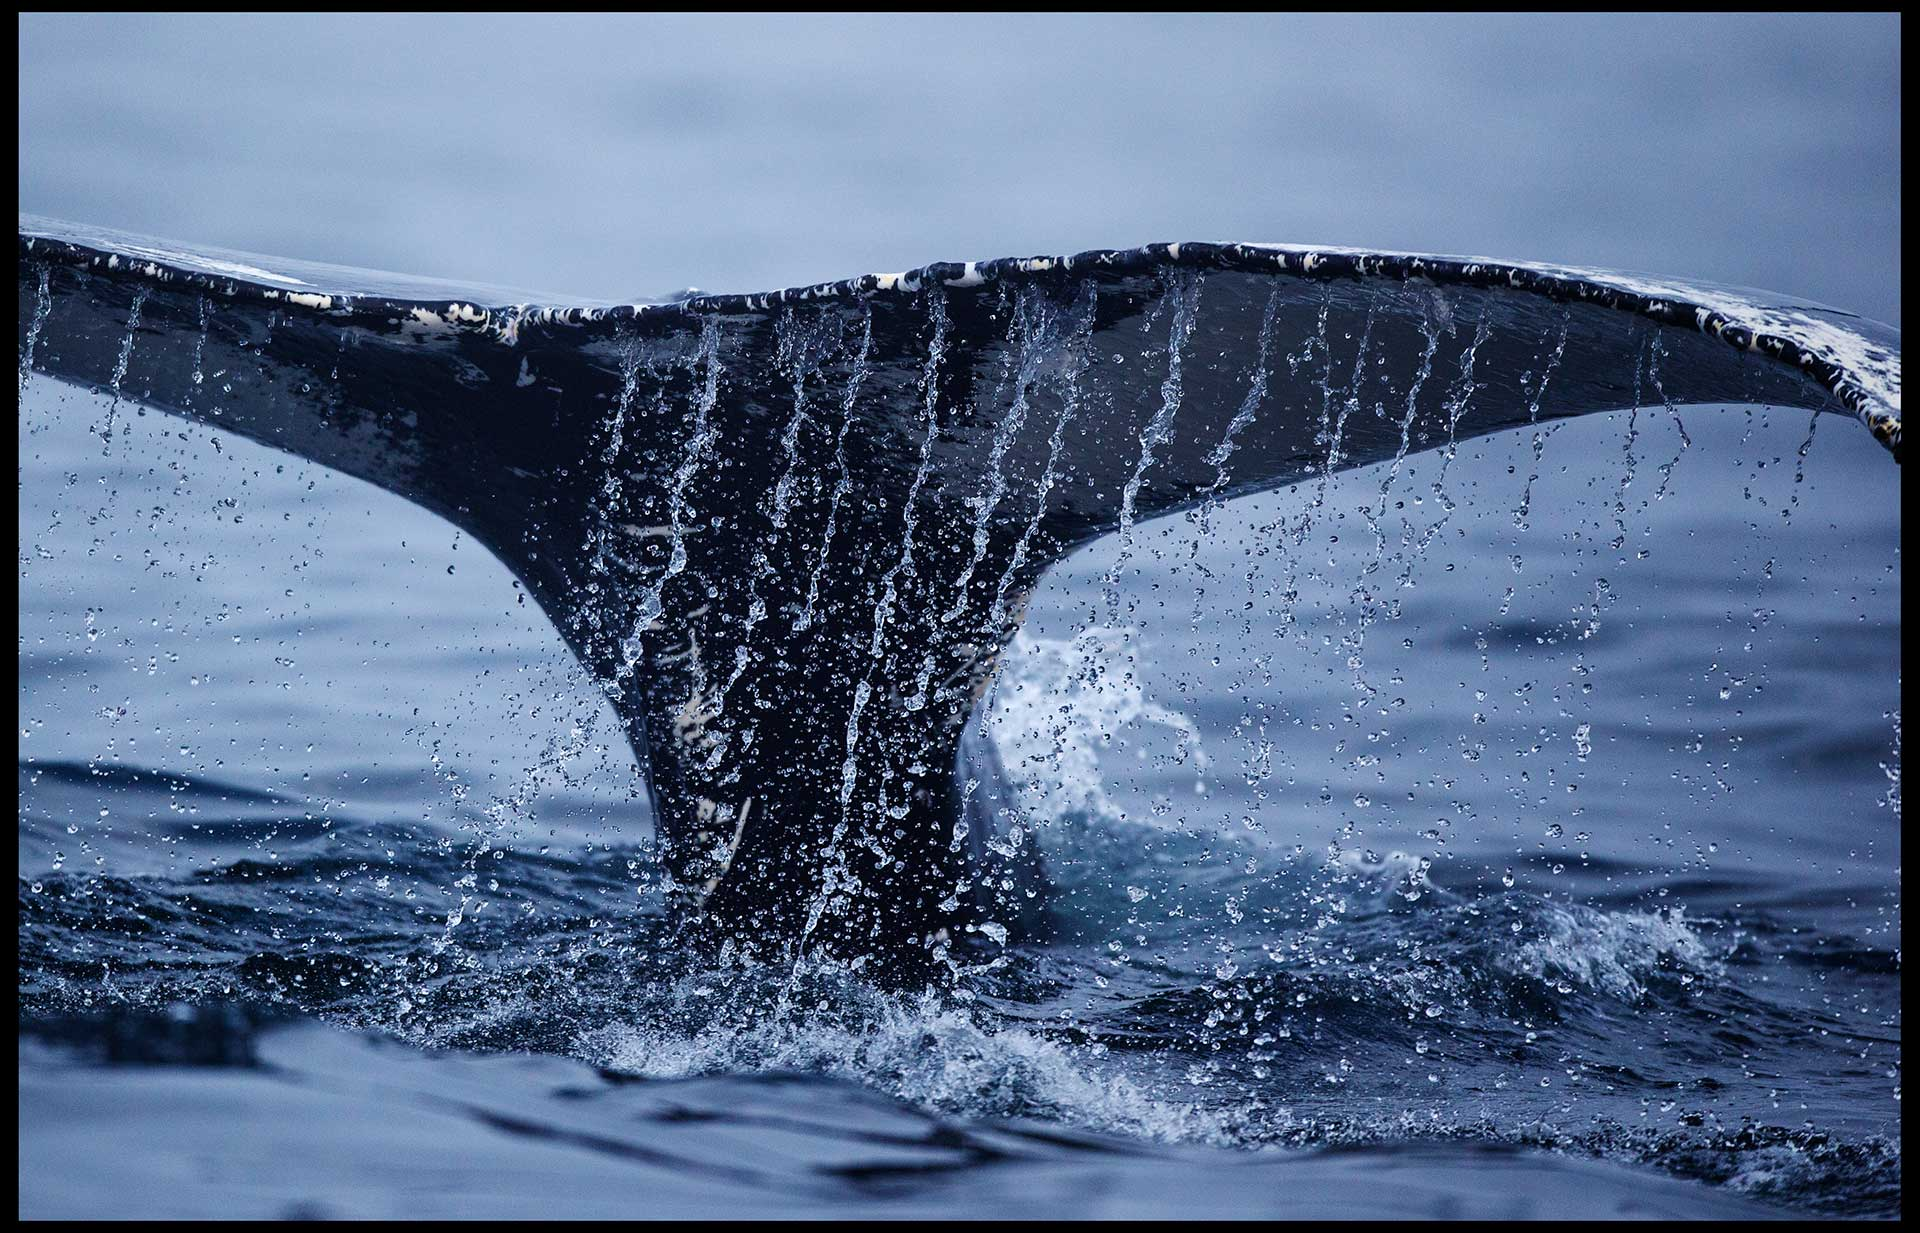 whales_july2014_part2-raw-0213